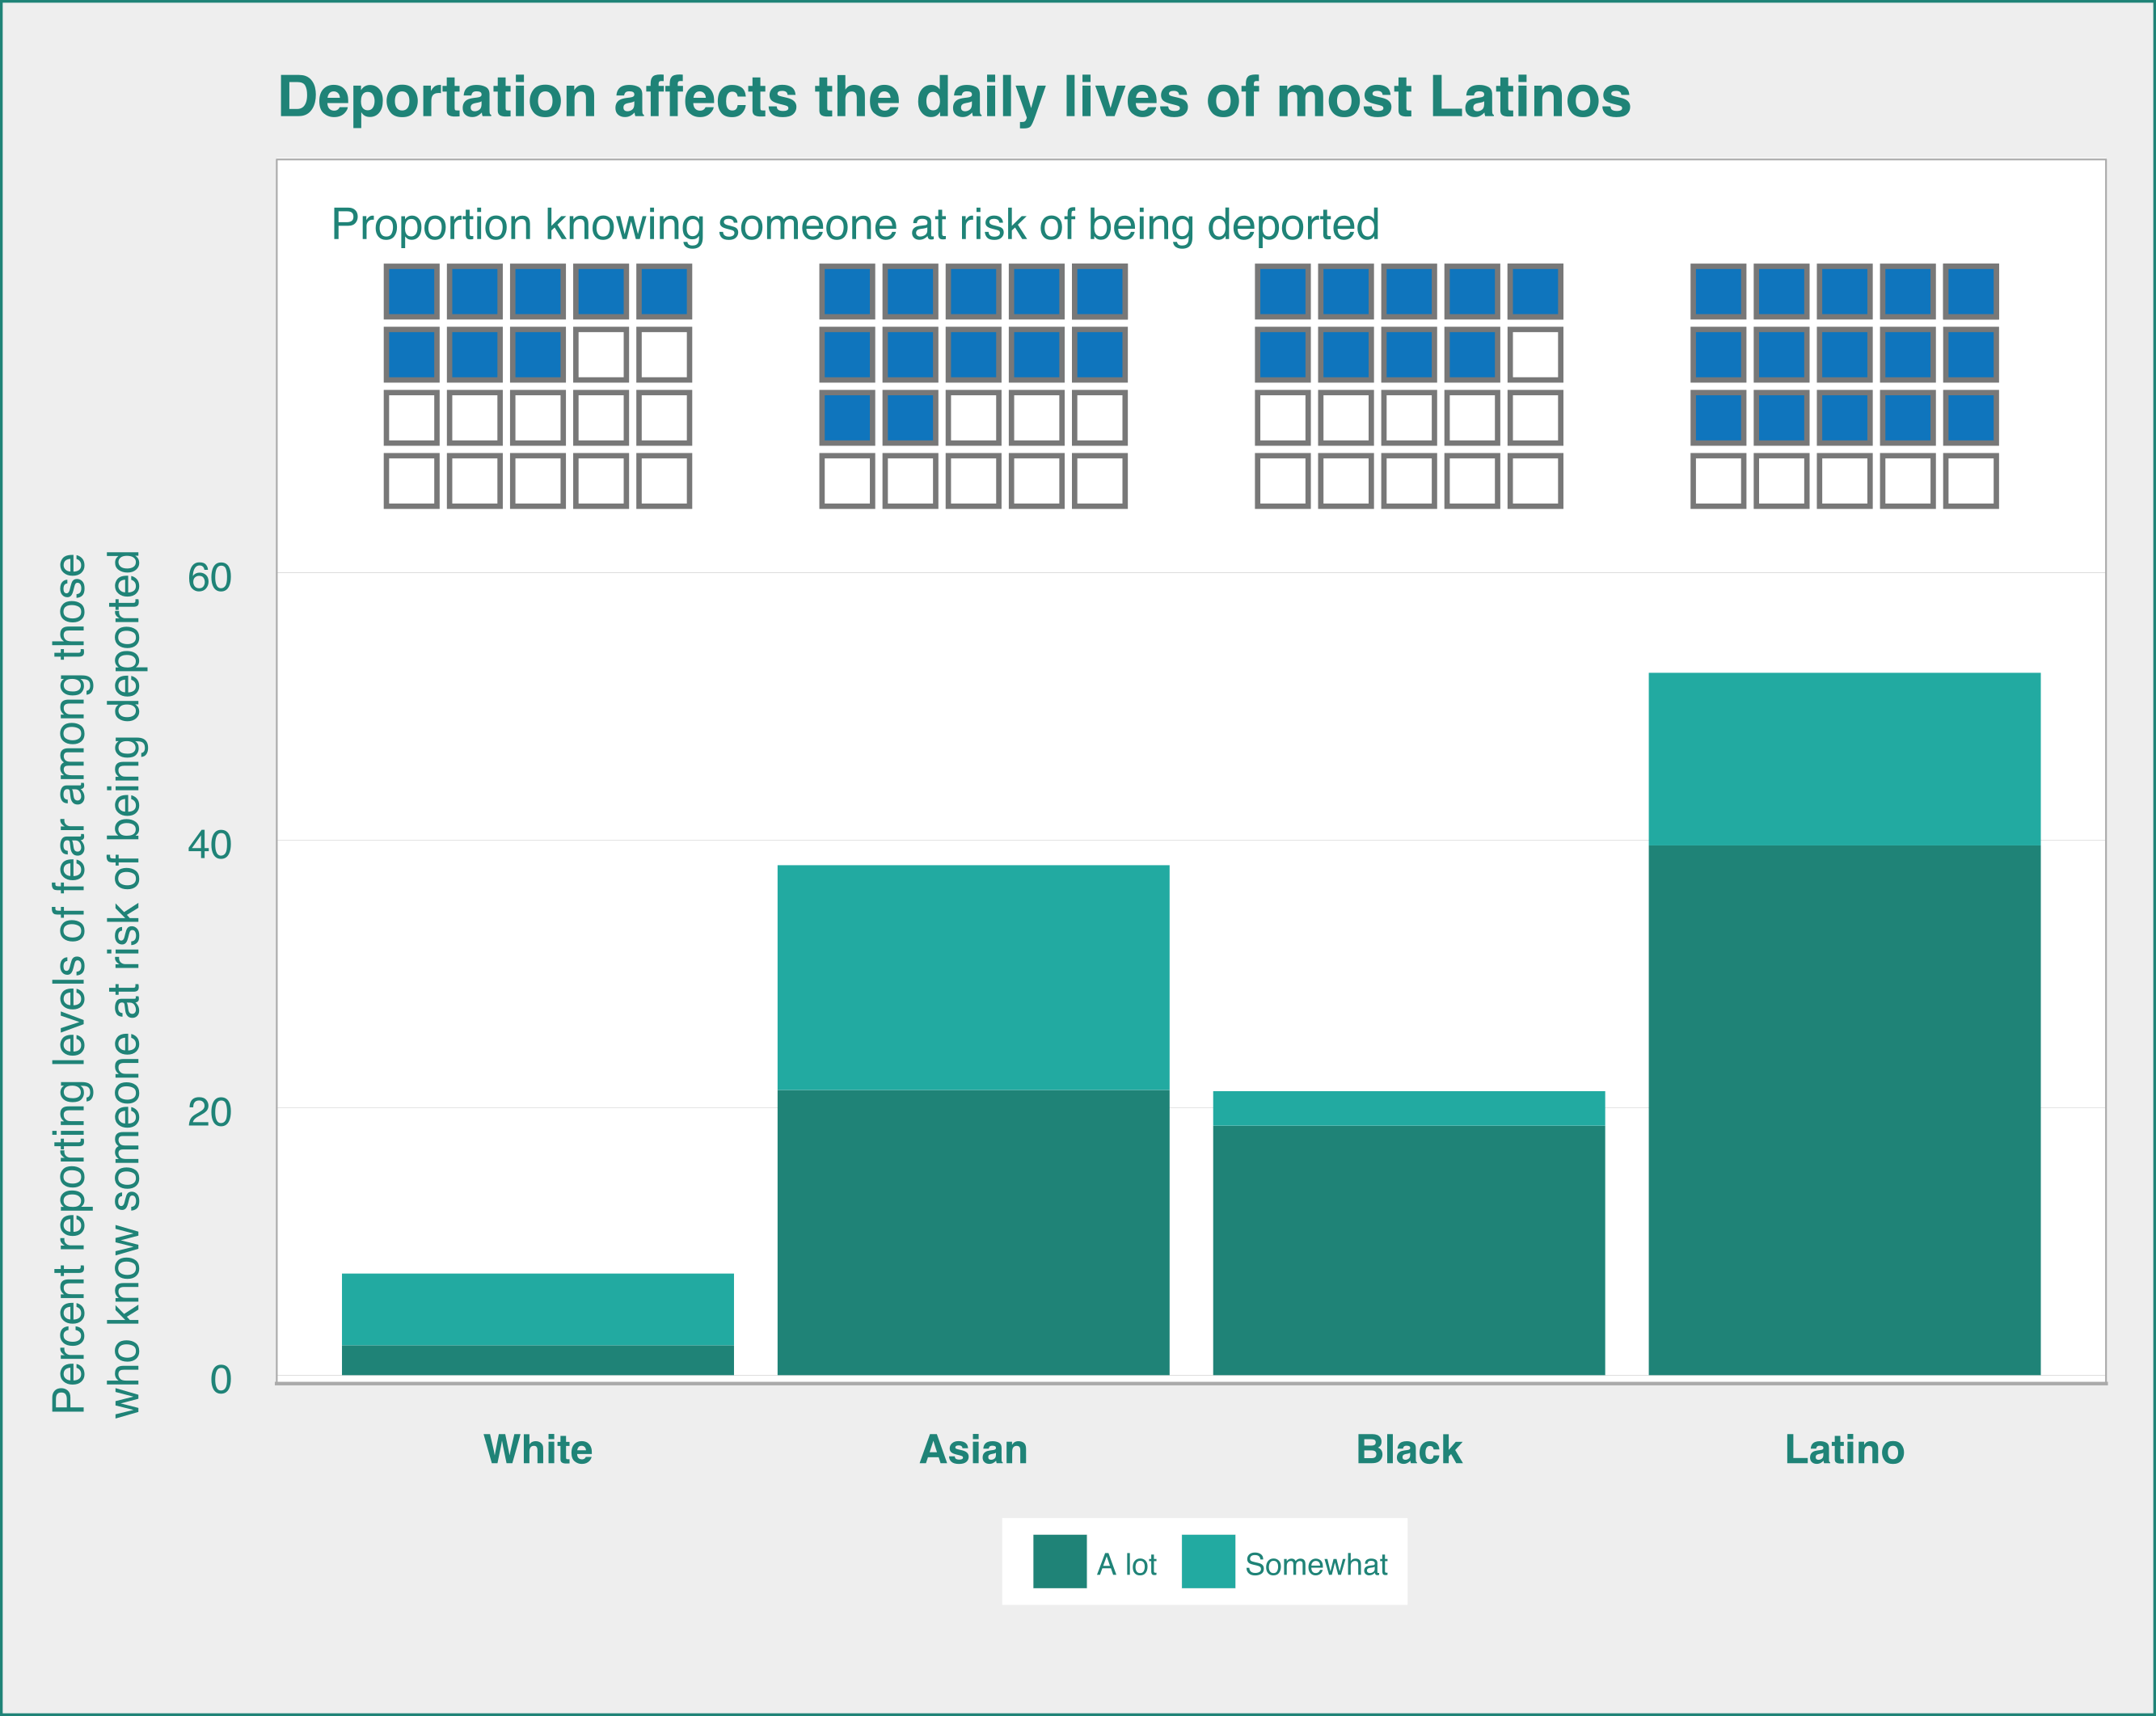 Graph of fear of deportation by race